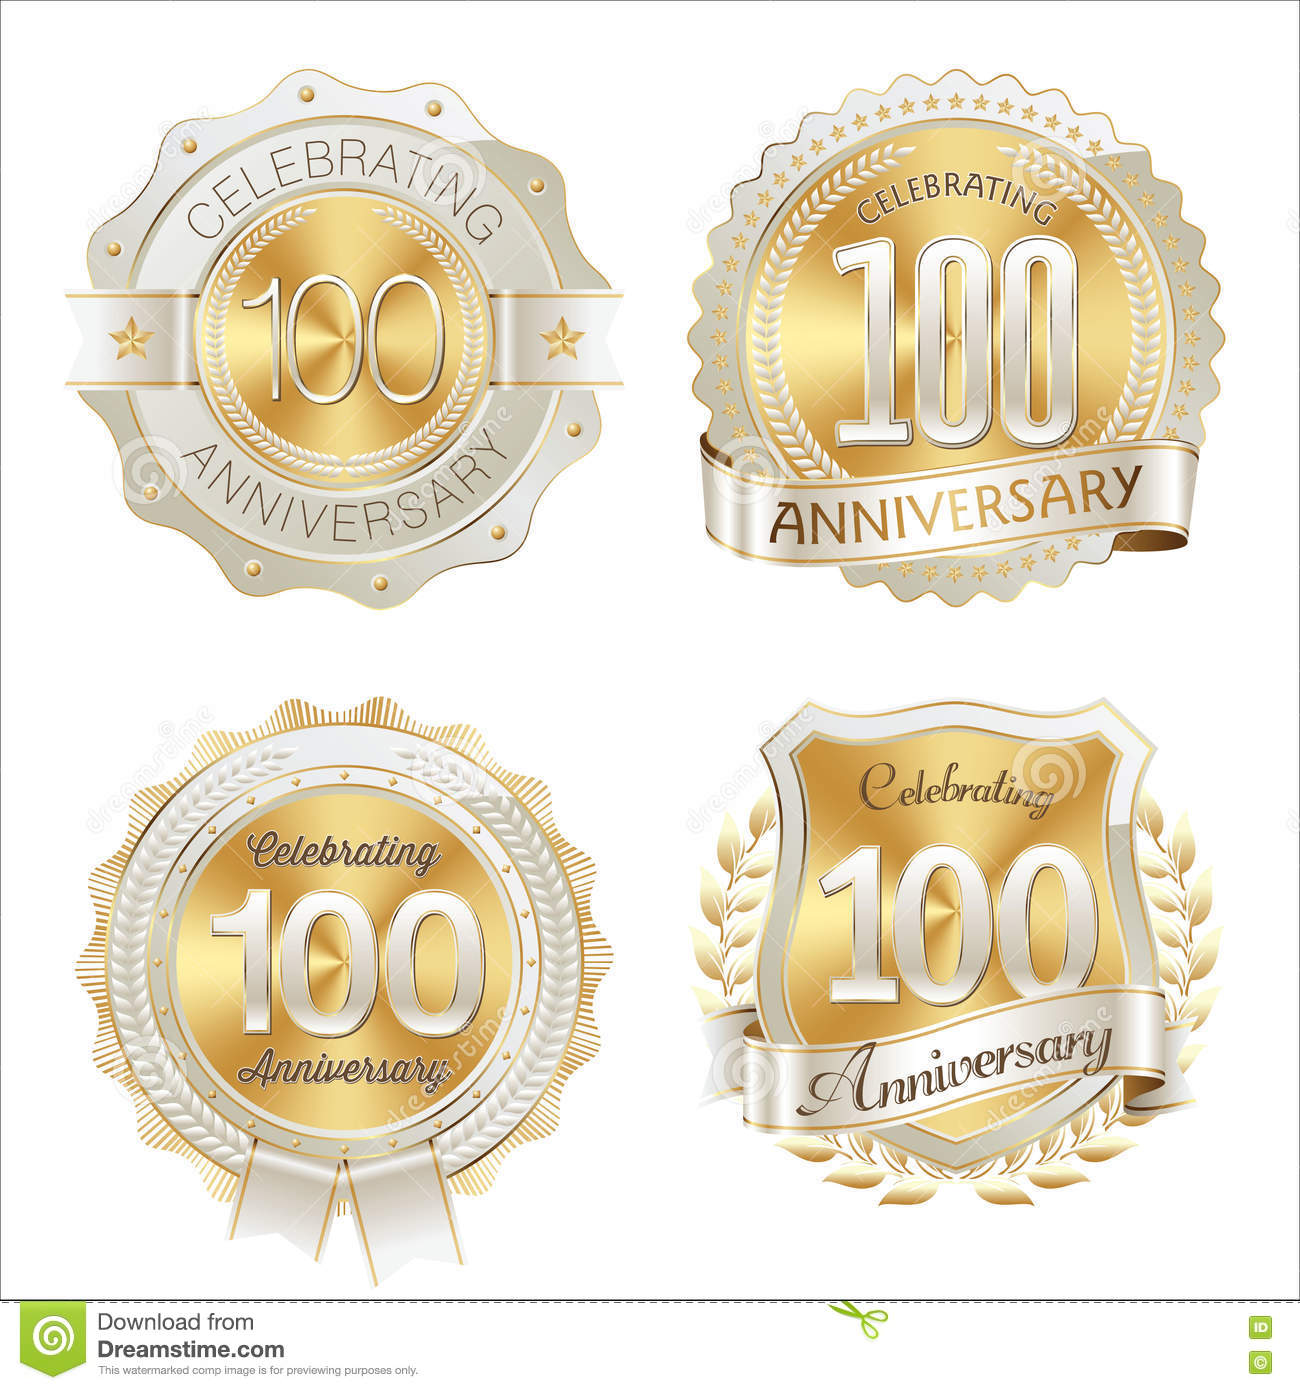 Gold and White Anniversary Badges 100th Years Celebration